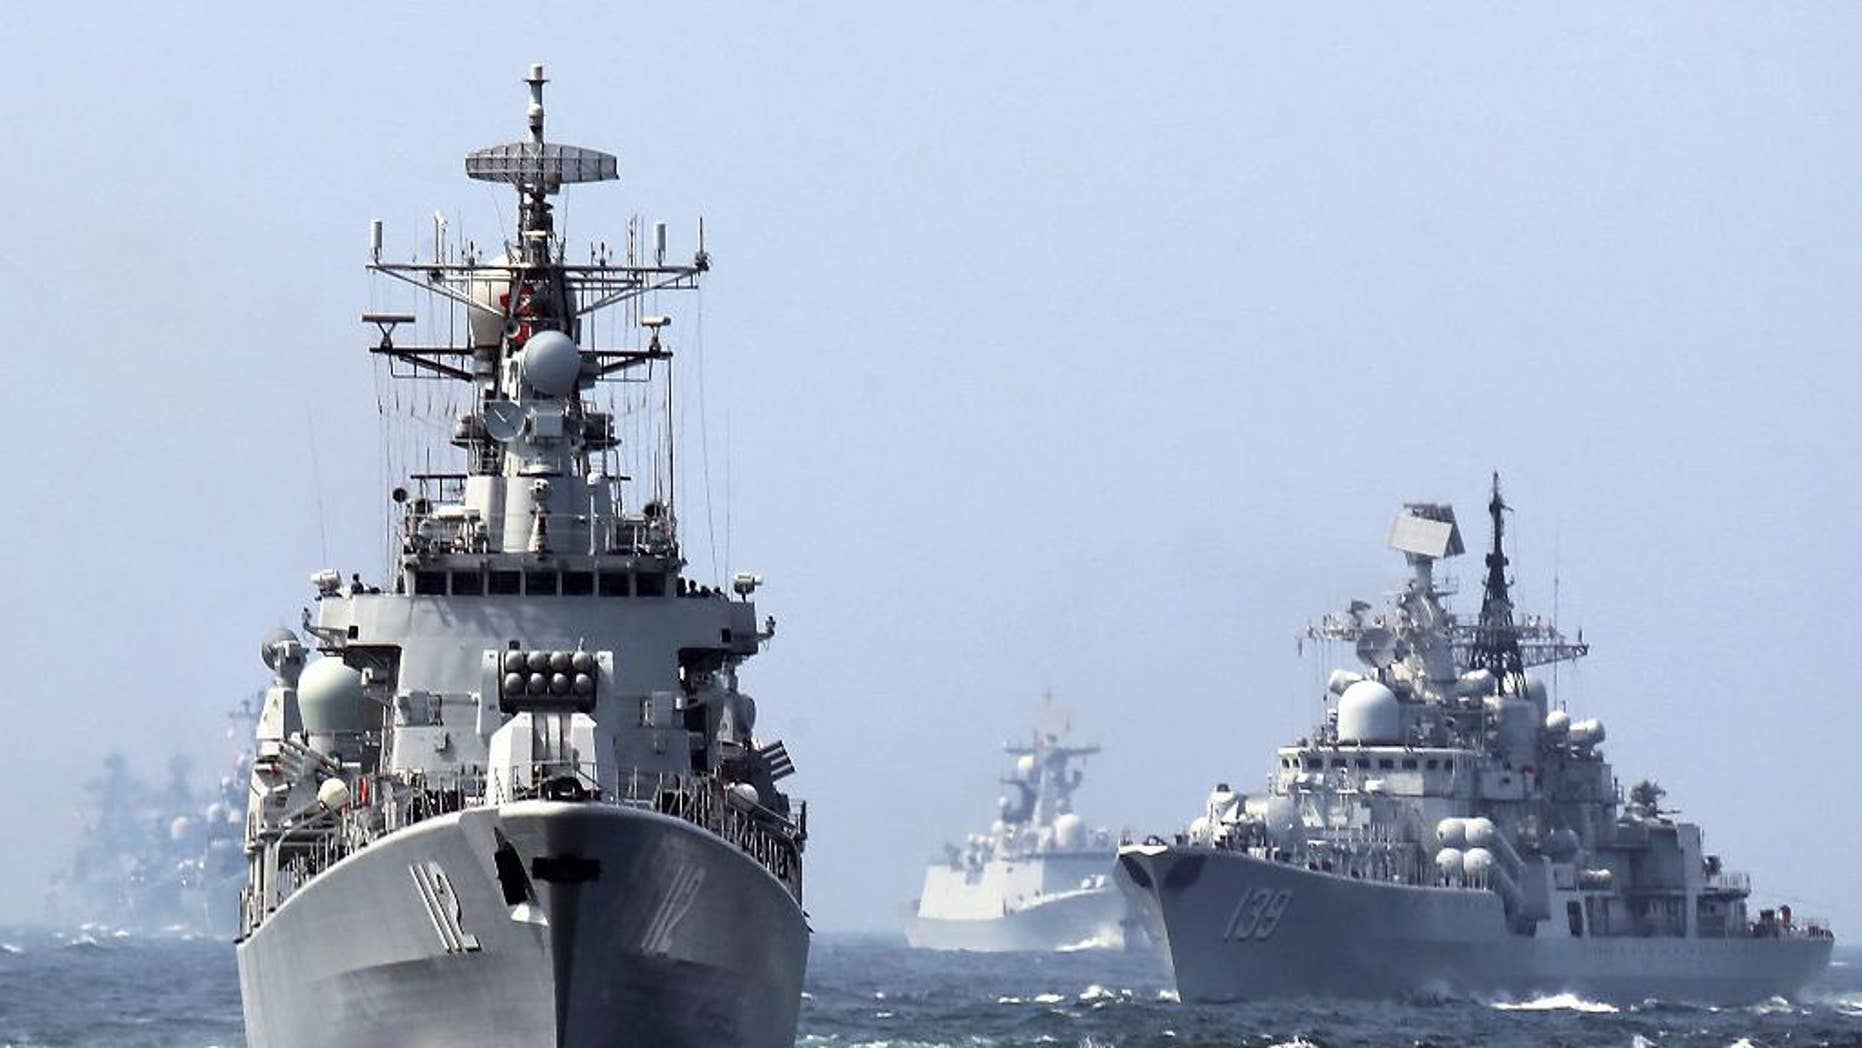 "In this May 24, 2014, file photo, China's Harbin (112) guided missile destroyer and DDG-139 Ningbo Sovremenny class Type-956EM destroyer, right, take part in a week-long China-Russia ""Joint Sea-2014"" navy exercise at the East China Sea off Shanghai, China. A Chinese navy task force wrapped up visits to four Persian Gulf states as the increasingly capable maritime force grows its presence in the strategically vital region. The three ships, including Harbin, departed Kuwait on Sunday, Feb. 5, 2017, after stopping in Saudi Arabia, Qatar and the United Arab Emirates, the Defense Ministry said on its website Monday, Feb. 6, 2017. (Chinatopix via AP)"